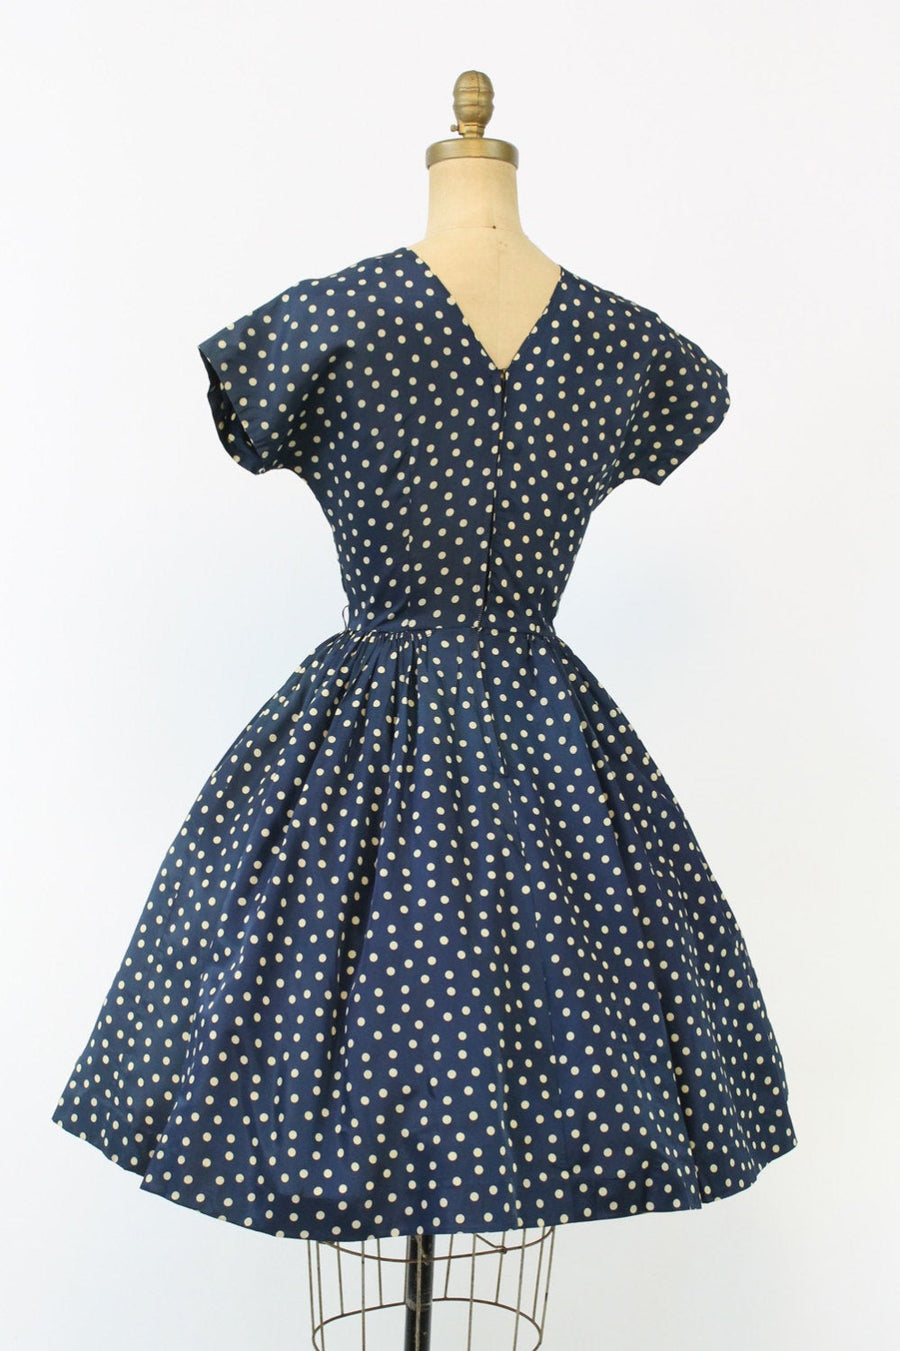 1950s polka dot dress | vintage rayon dress | new in